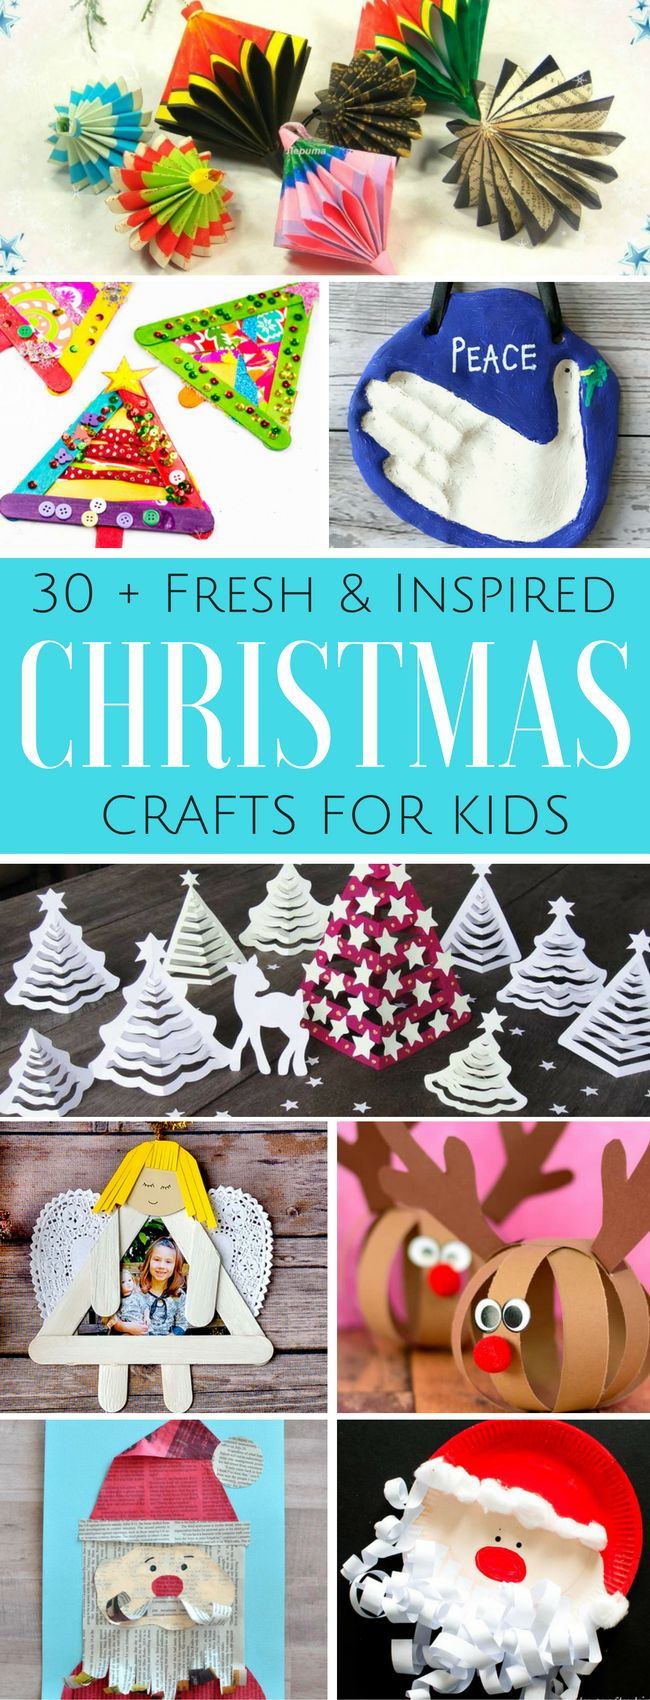 Arty Crafty Kids Christmas Crafts for